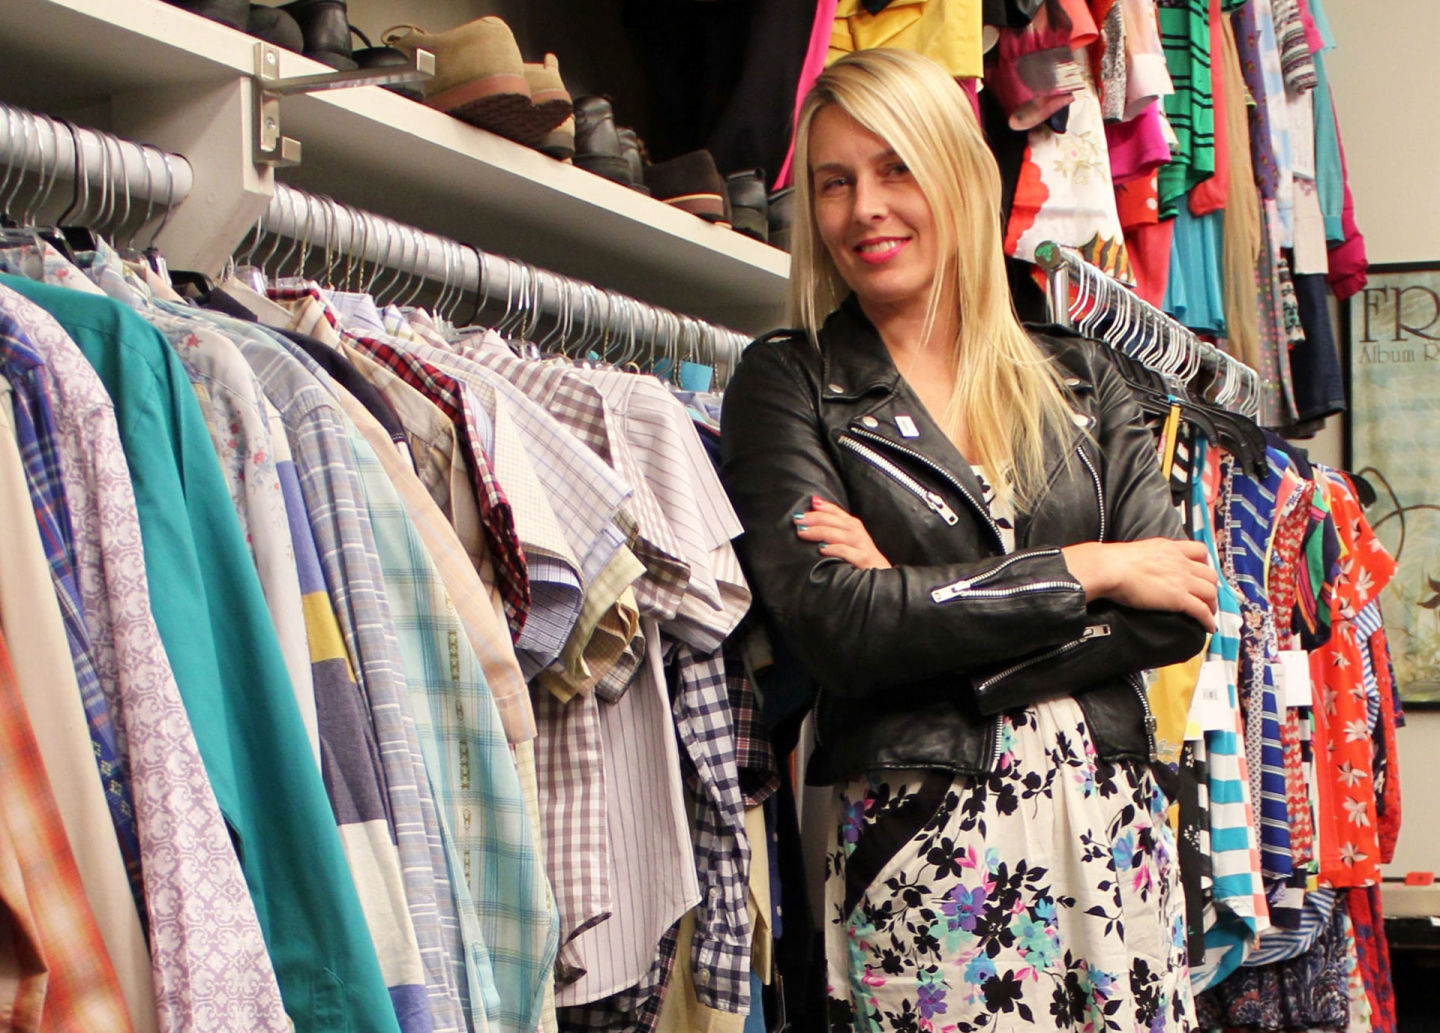 A Hollywood Costume Designer S Tips For Dressing On A Budget The California Report Kqed News